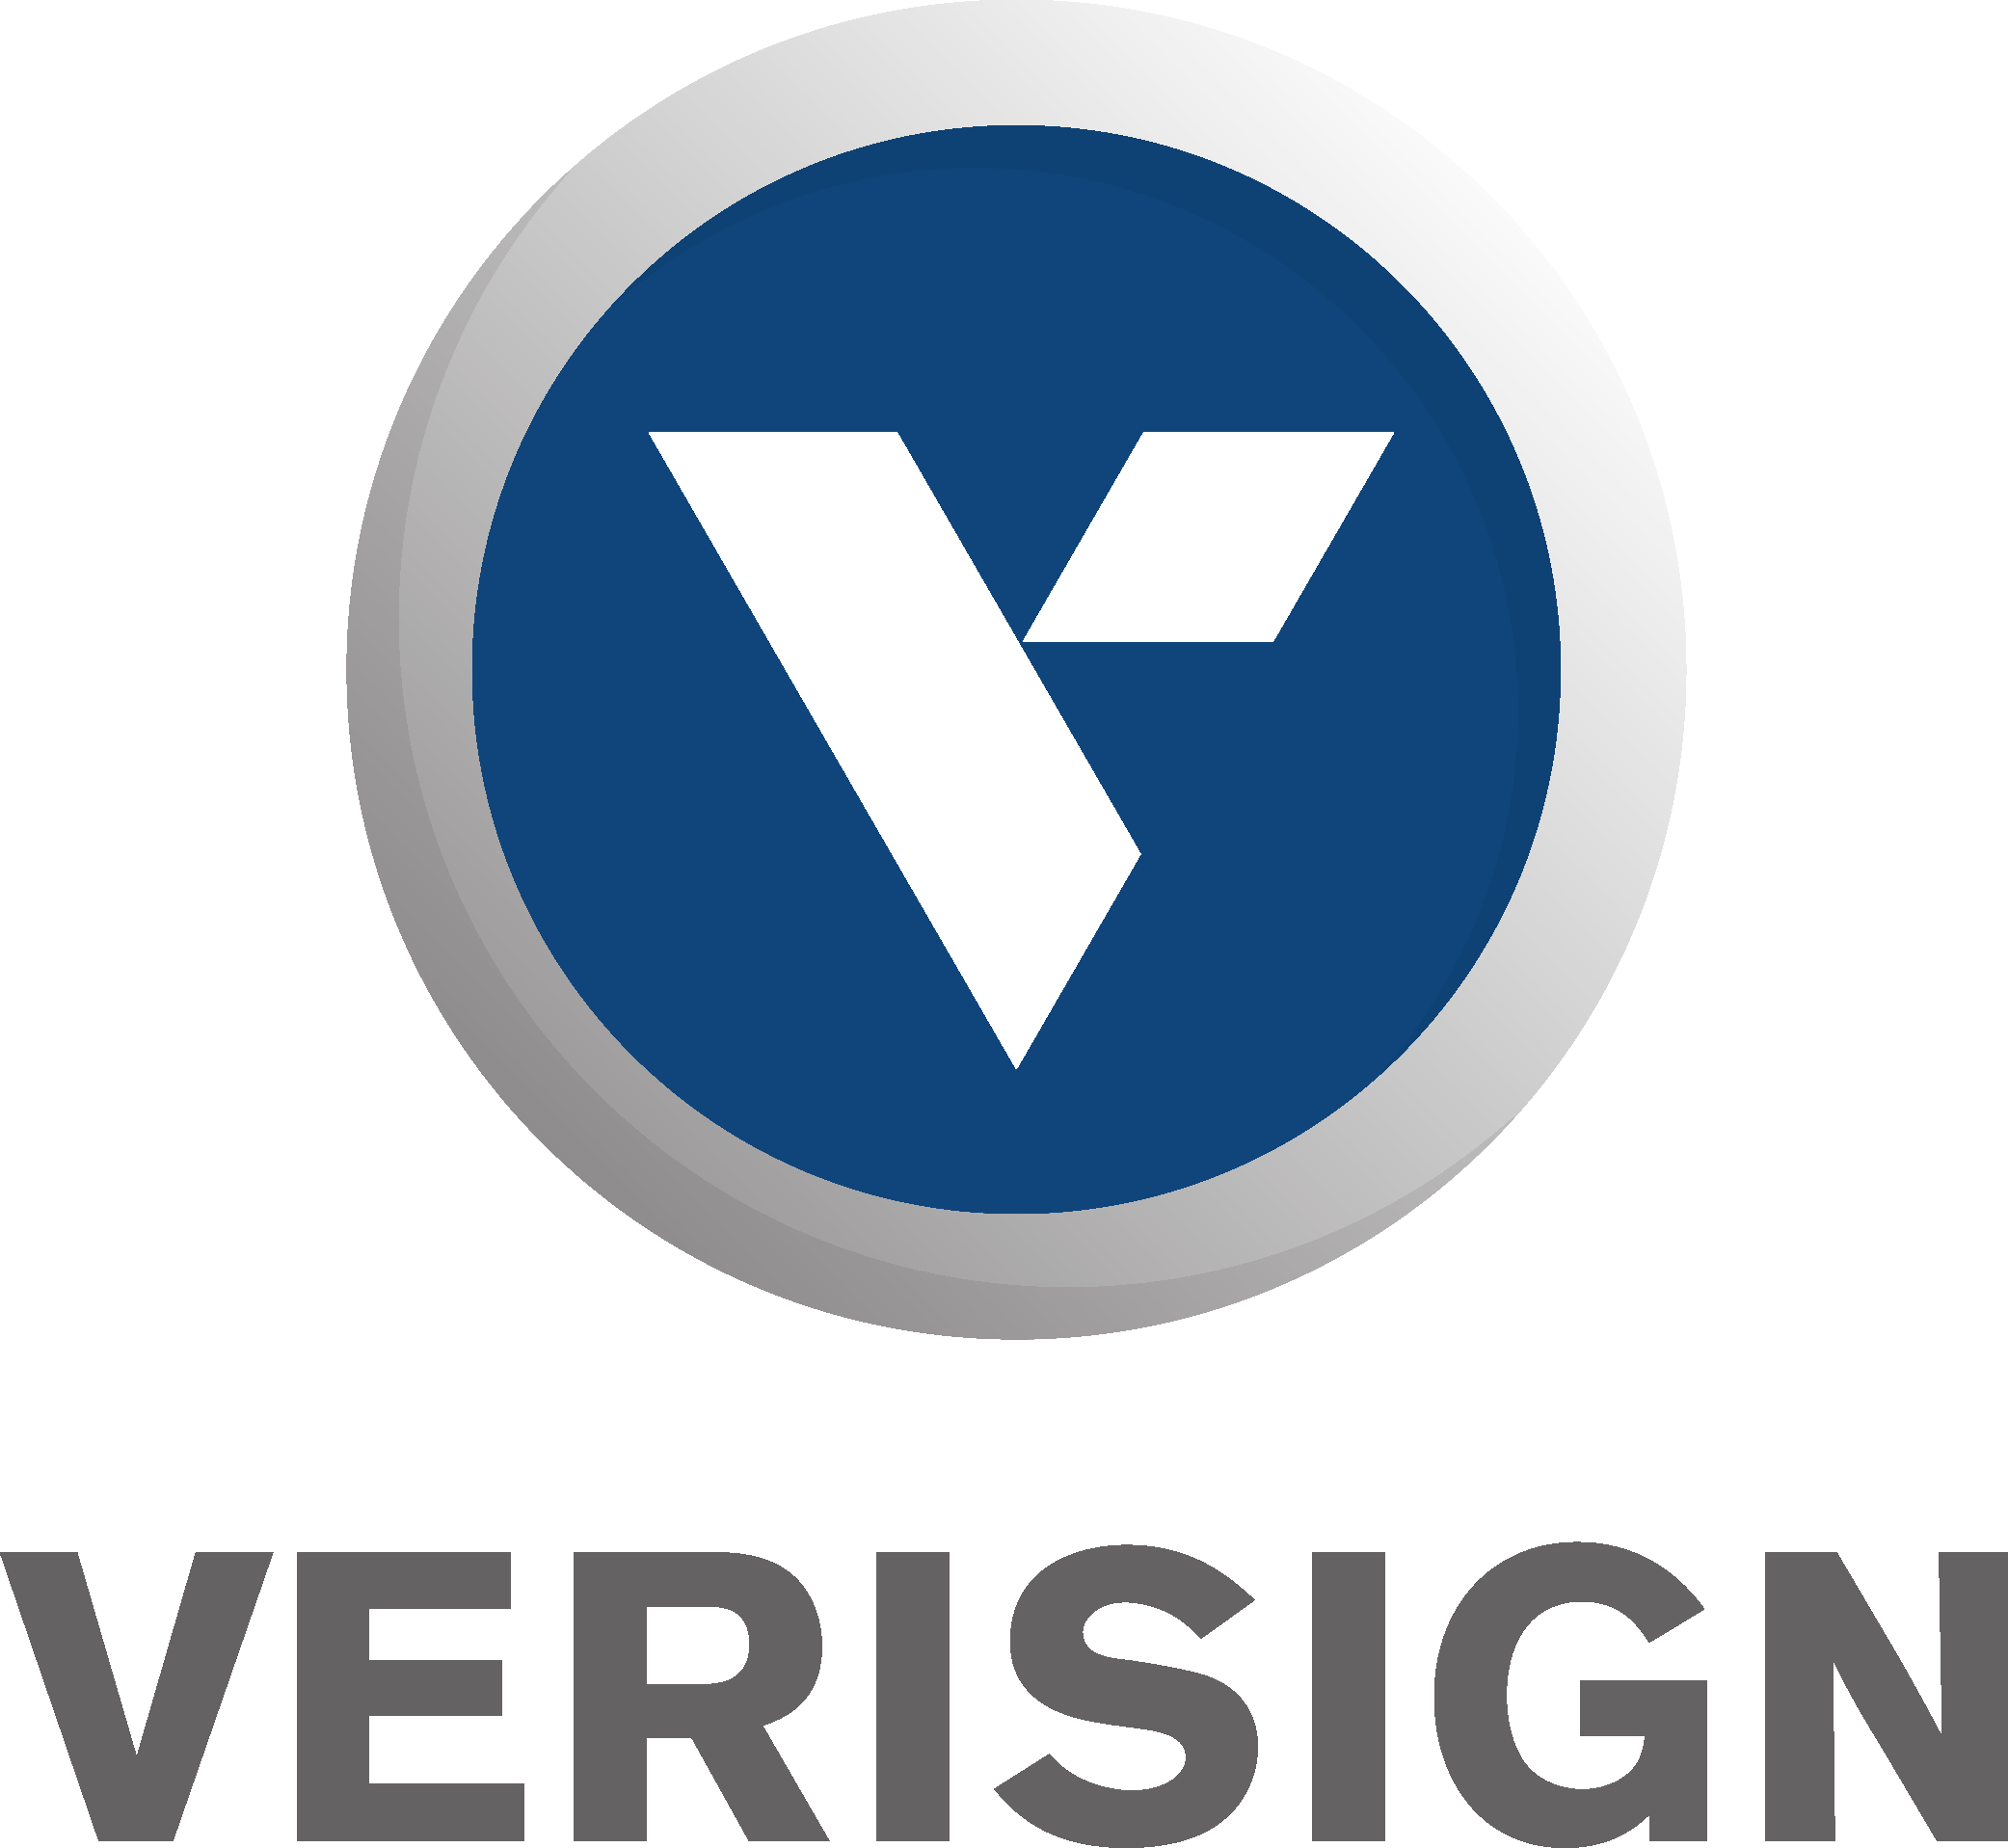 Verisign Logo Vector Icon Template Clipart Free Download.